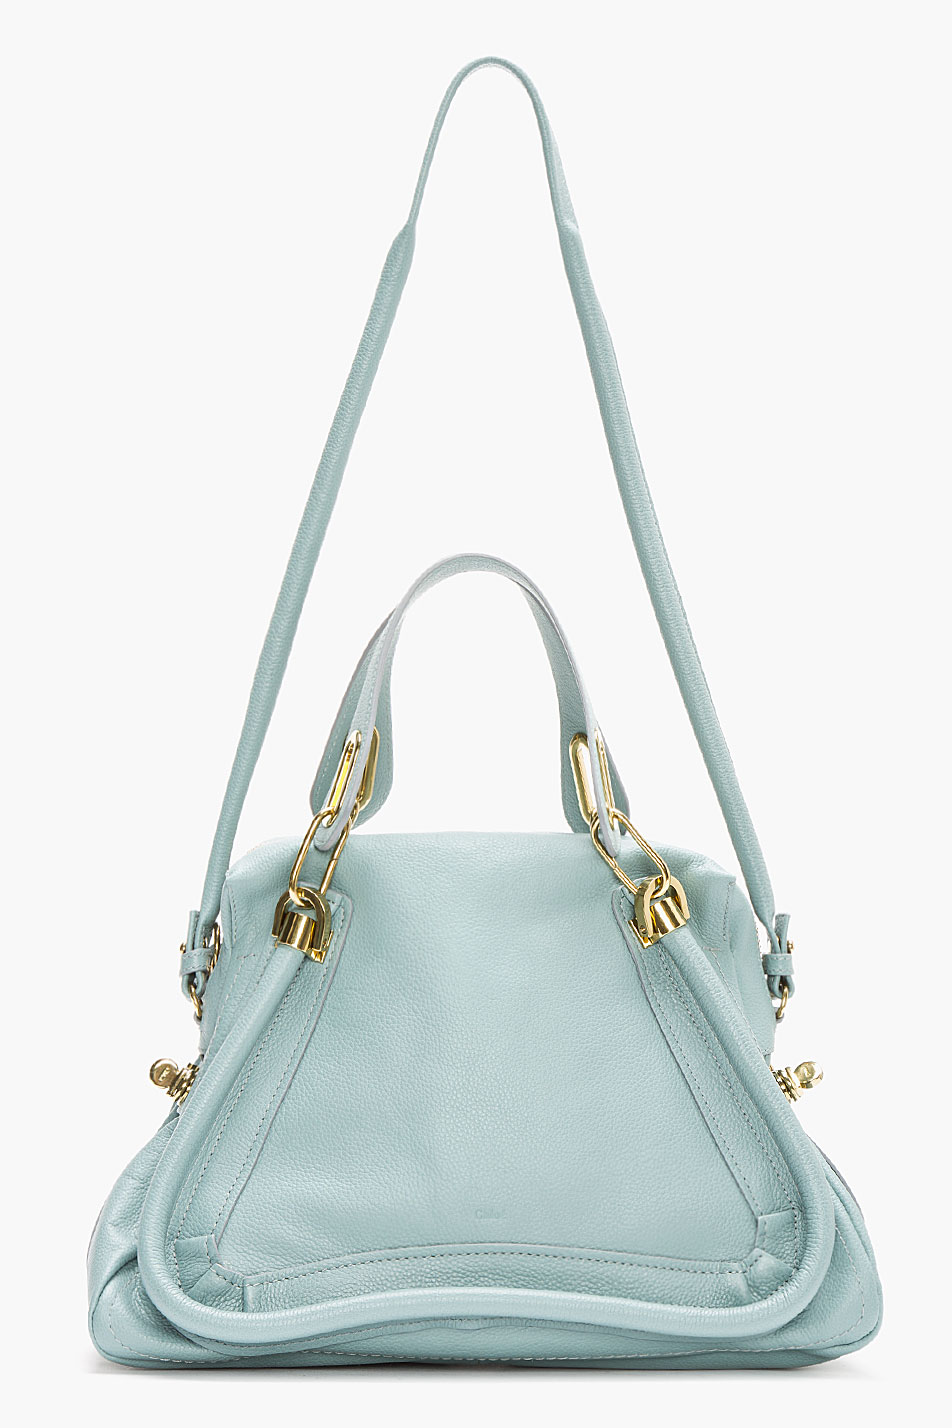 Chlo�� Mint Leather Medium Paraty Shoulder Bag in Green (mint) | Lyst